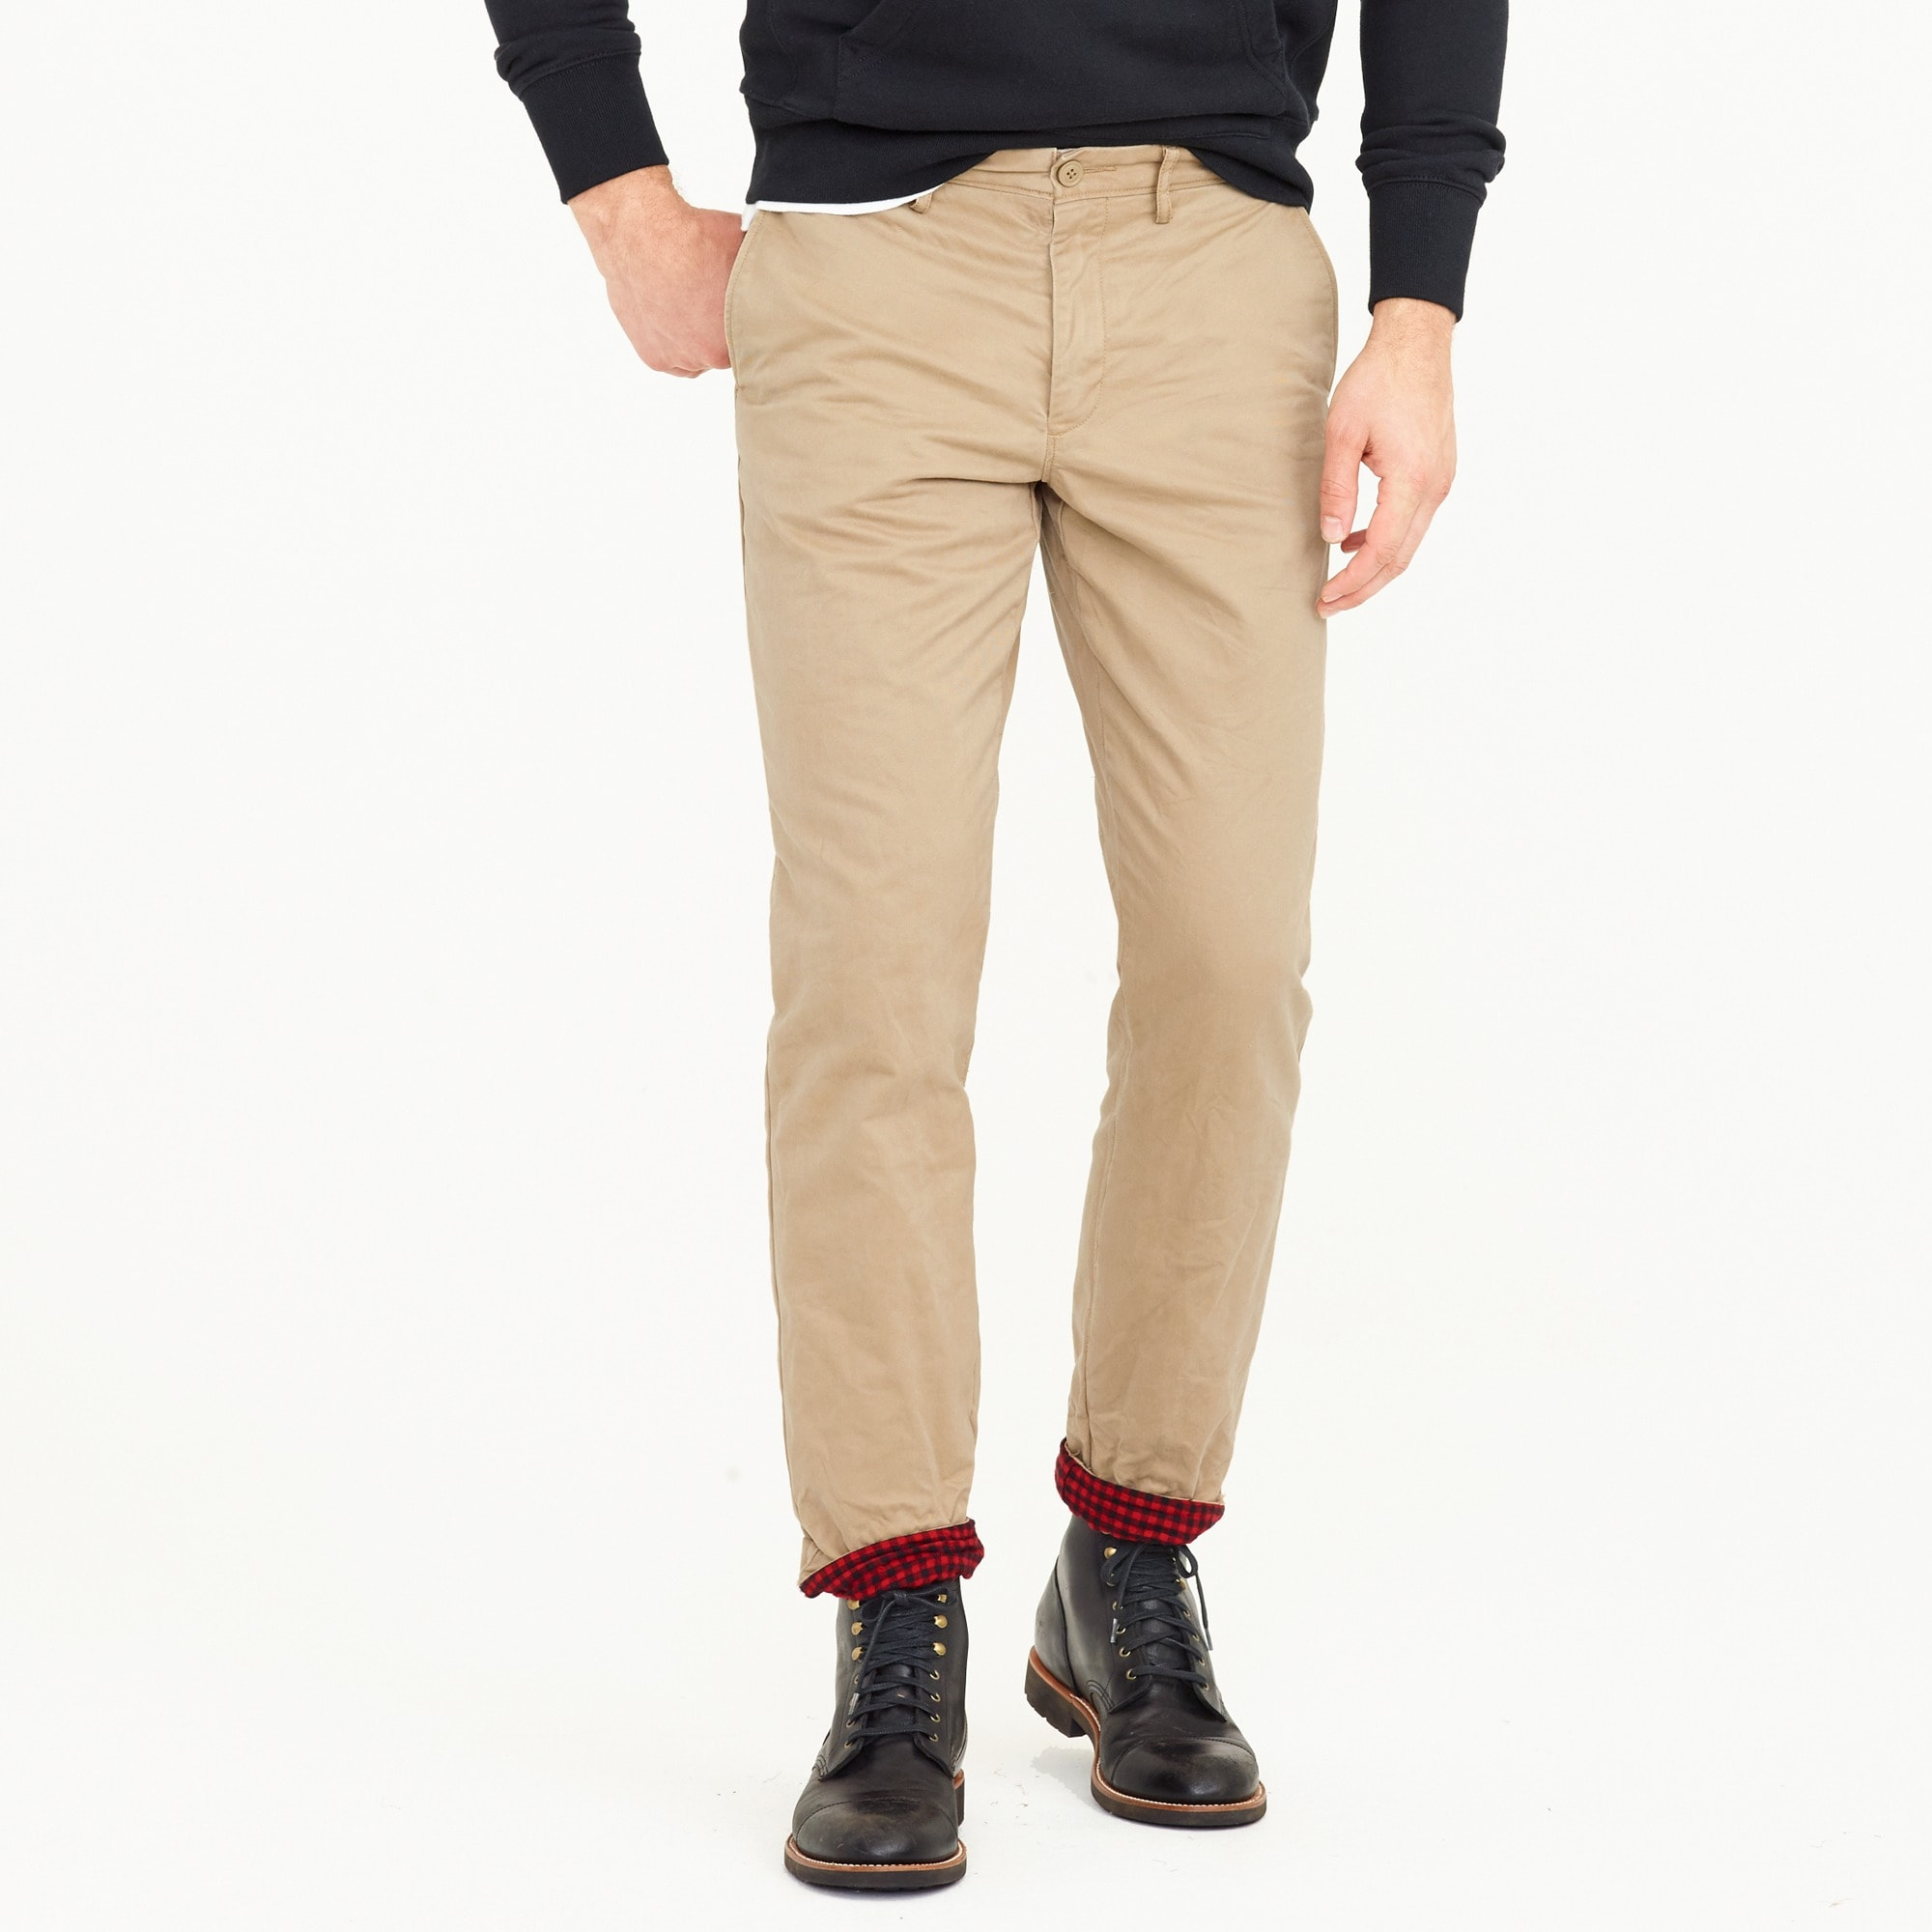 770 chino cabin pant : men's pants